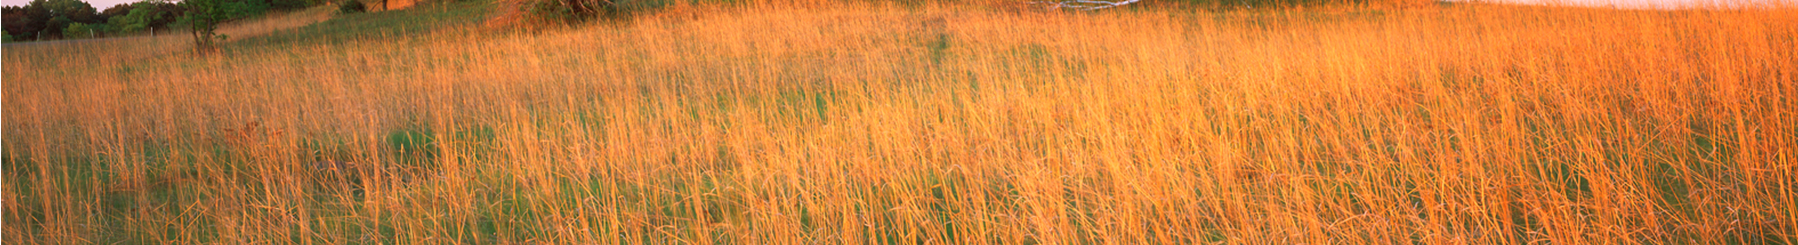 Banner of prairie grass